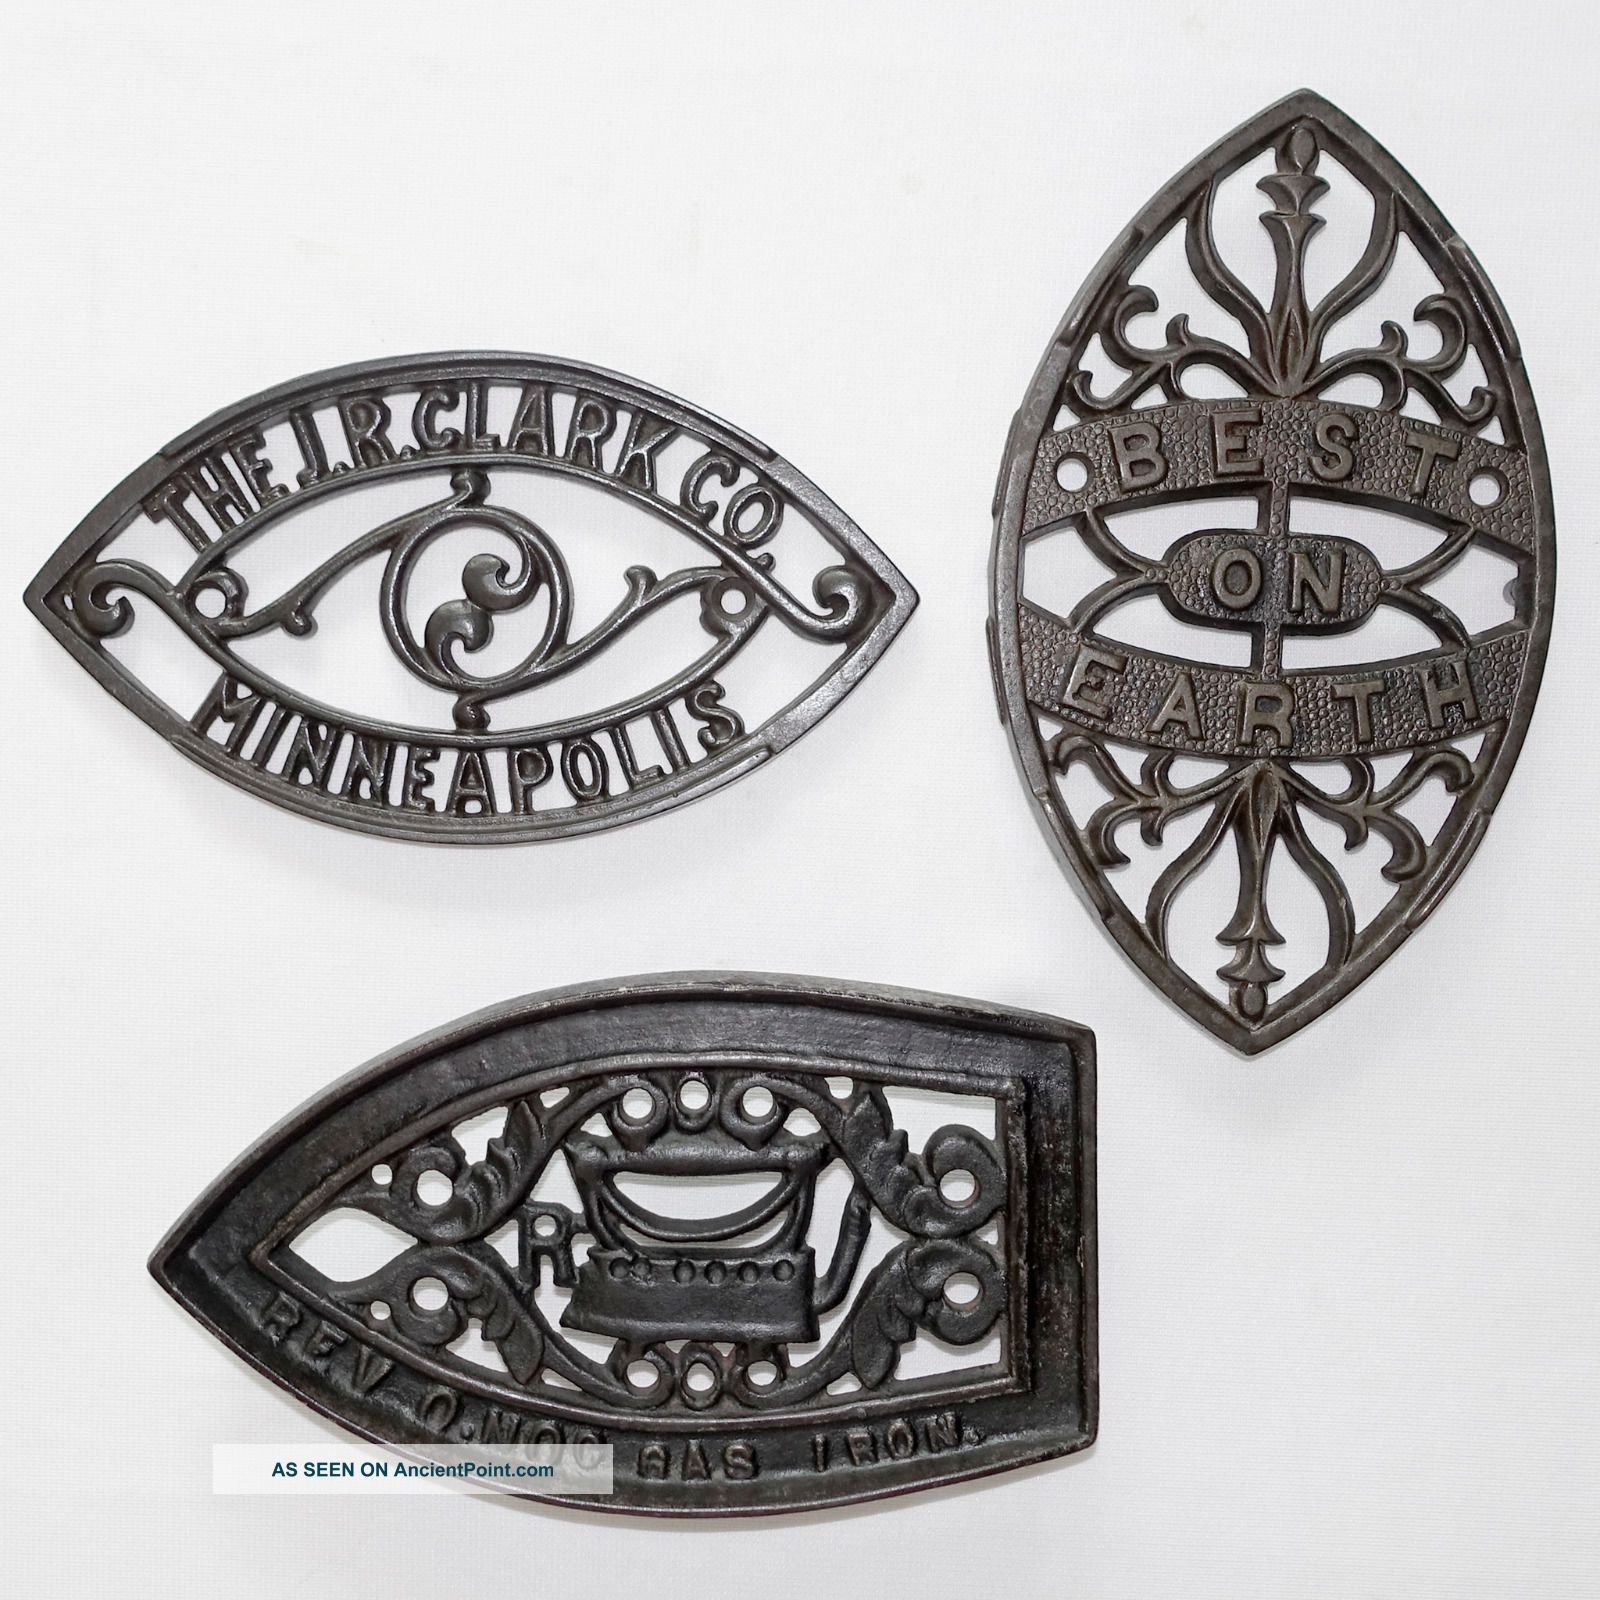 Four Cast Iron Sad Iron Stands Trivets: Clark,  Best On Earth,  Revo.  Noc & Clefton Trivets photo